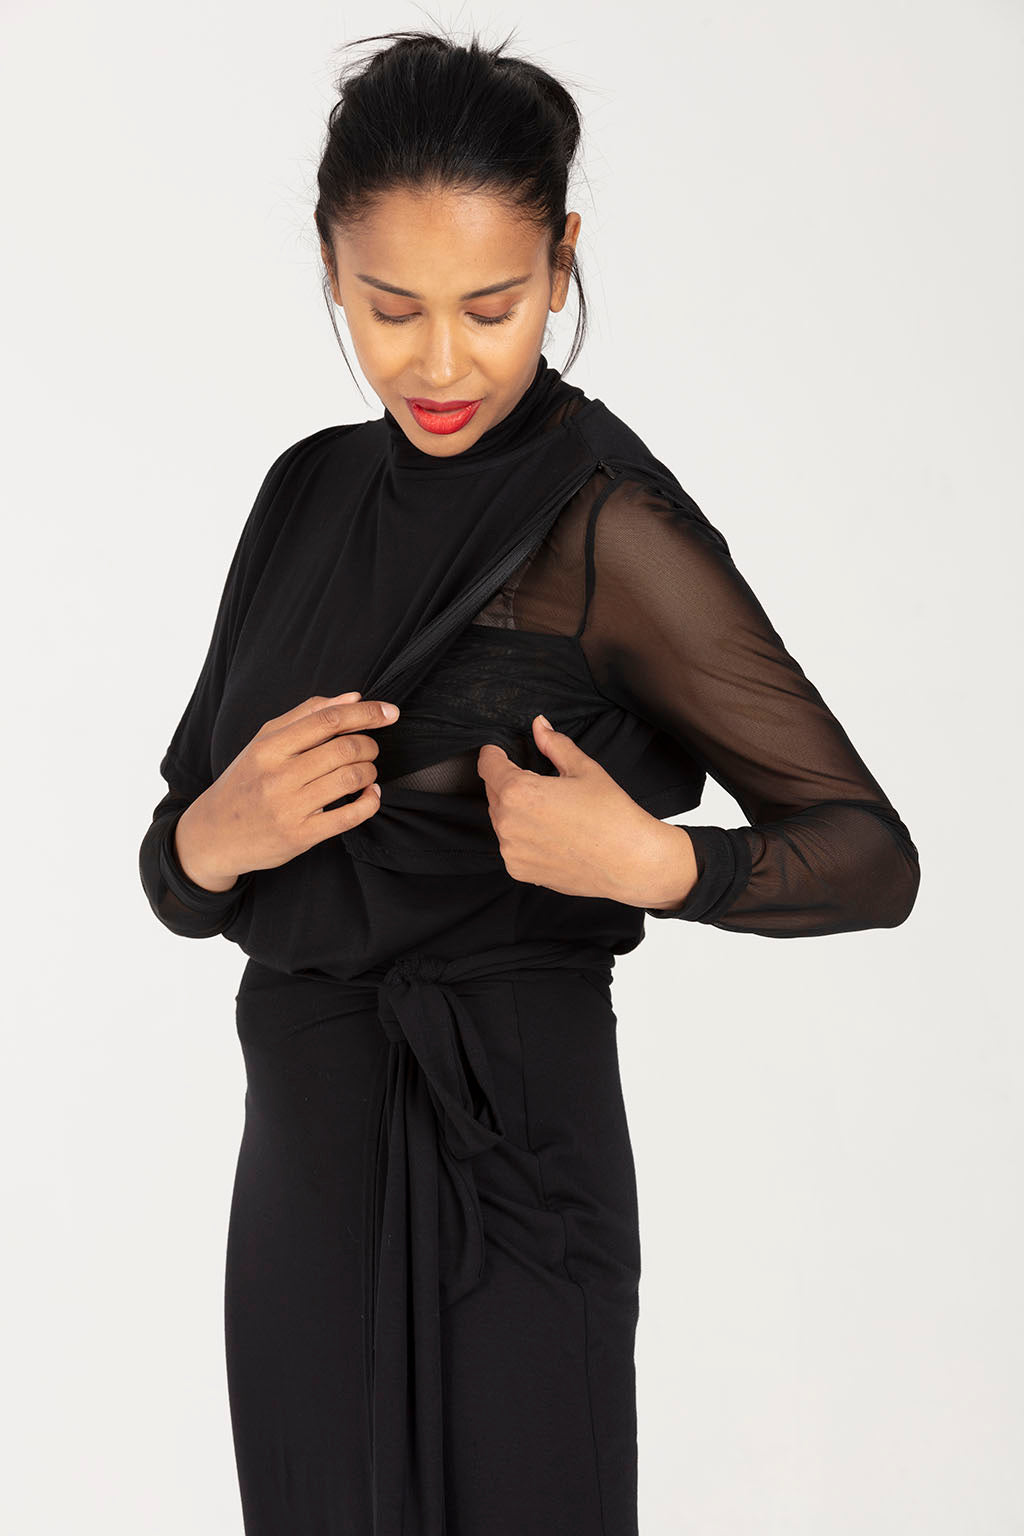 Nursing Dress, Occasion Wear in Black - Amelia by Sarka London - Breastfeeding access